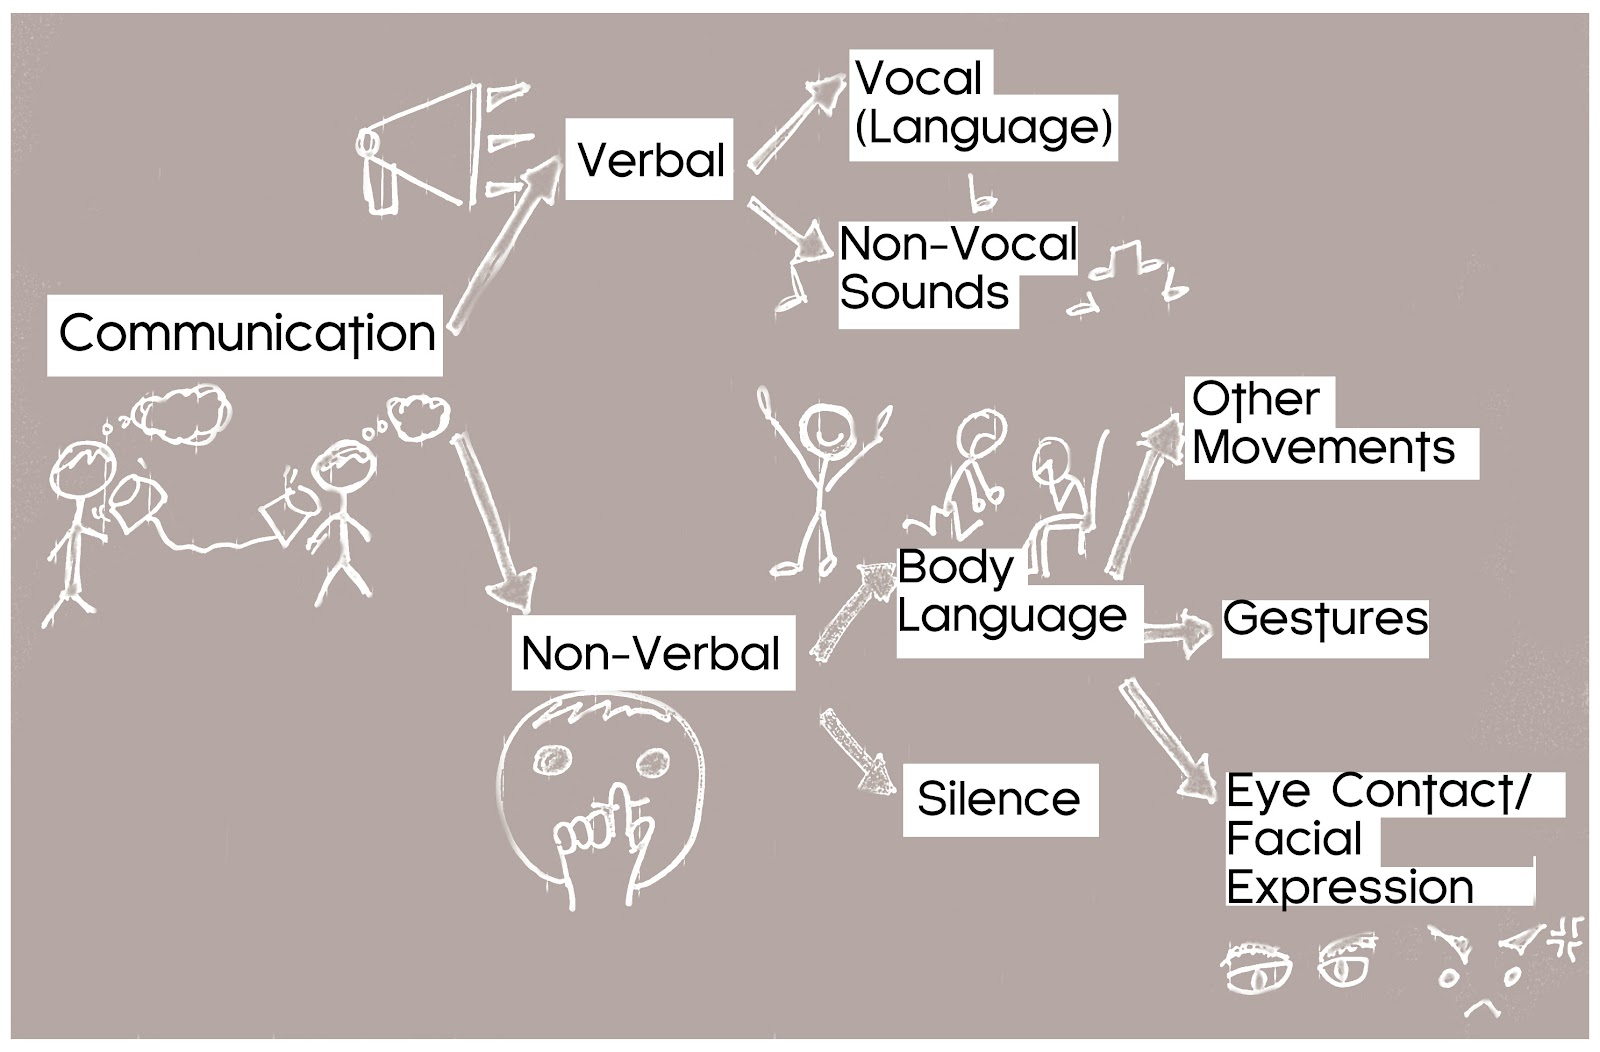 essay on body language the secrets of body language you shouldn t  of communication our saturdays are gone types of communication devon schiller body in the language self visual essay